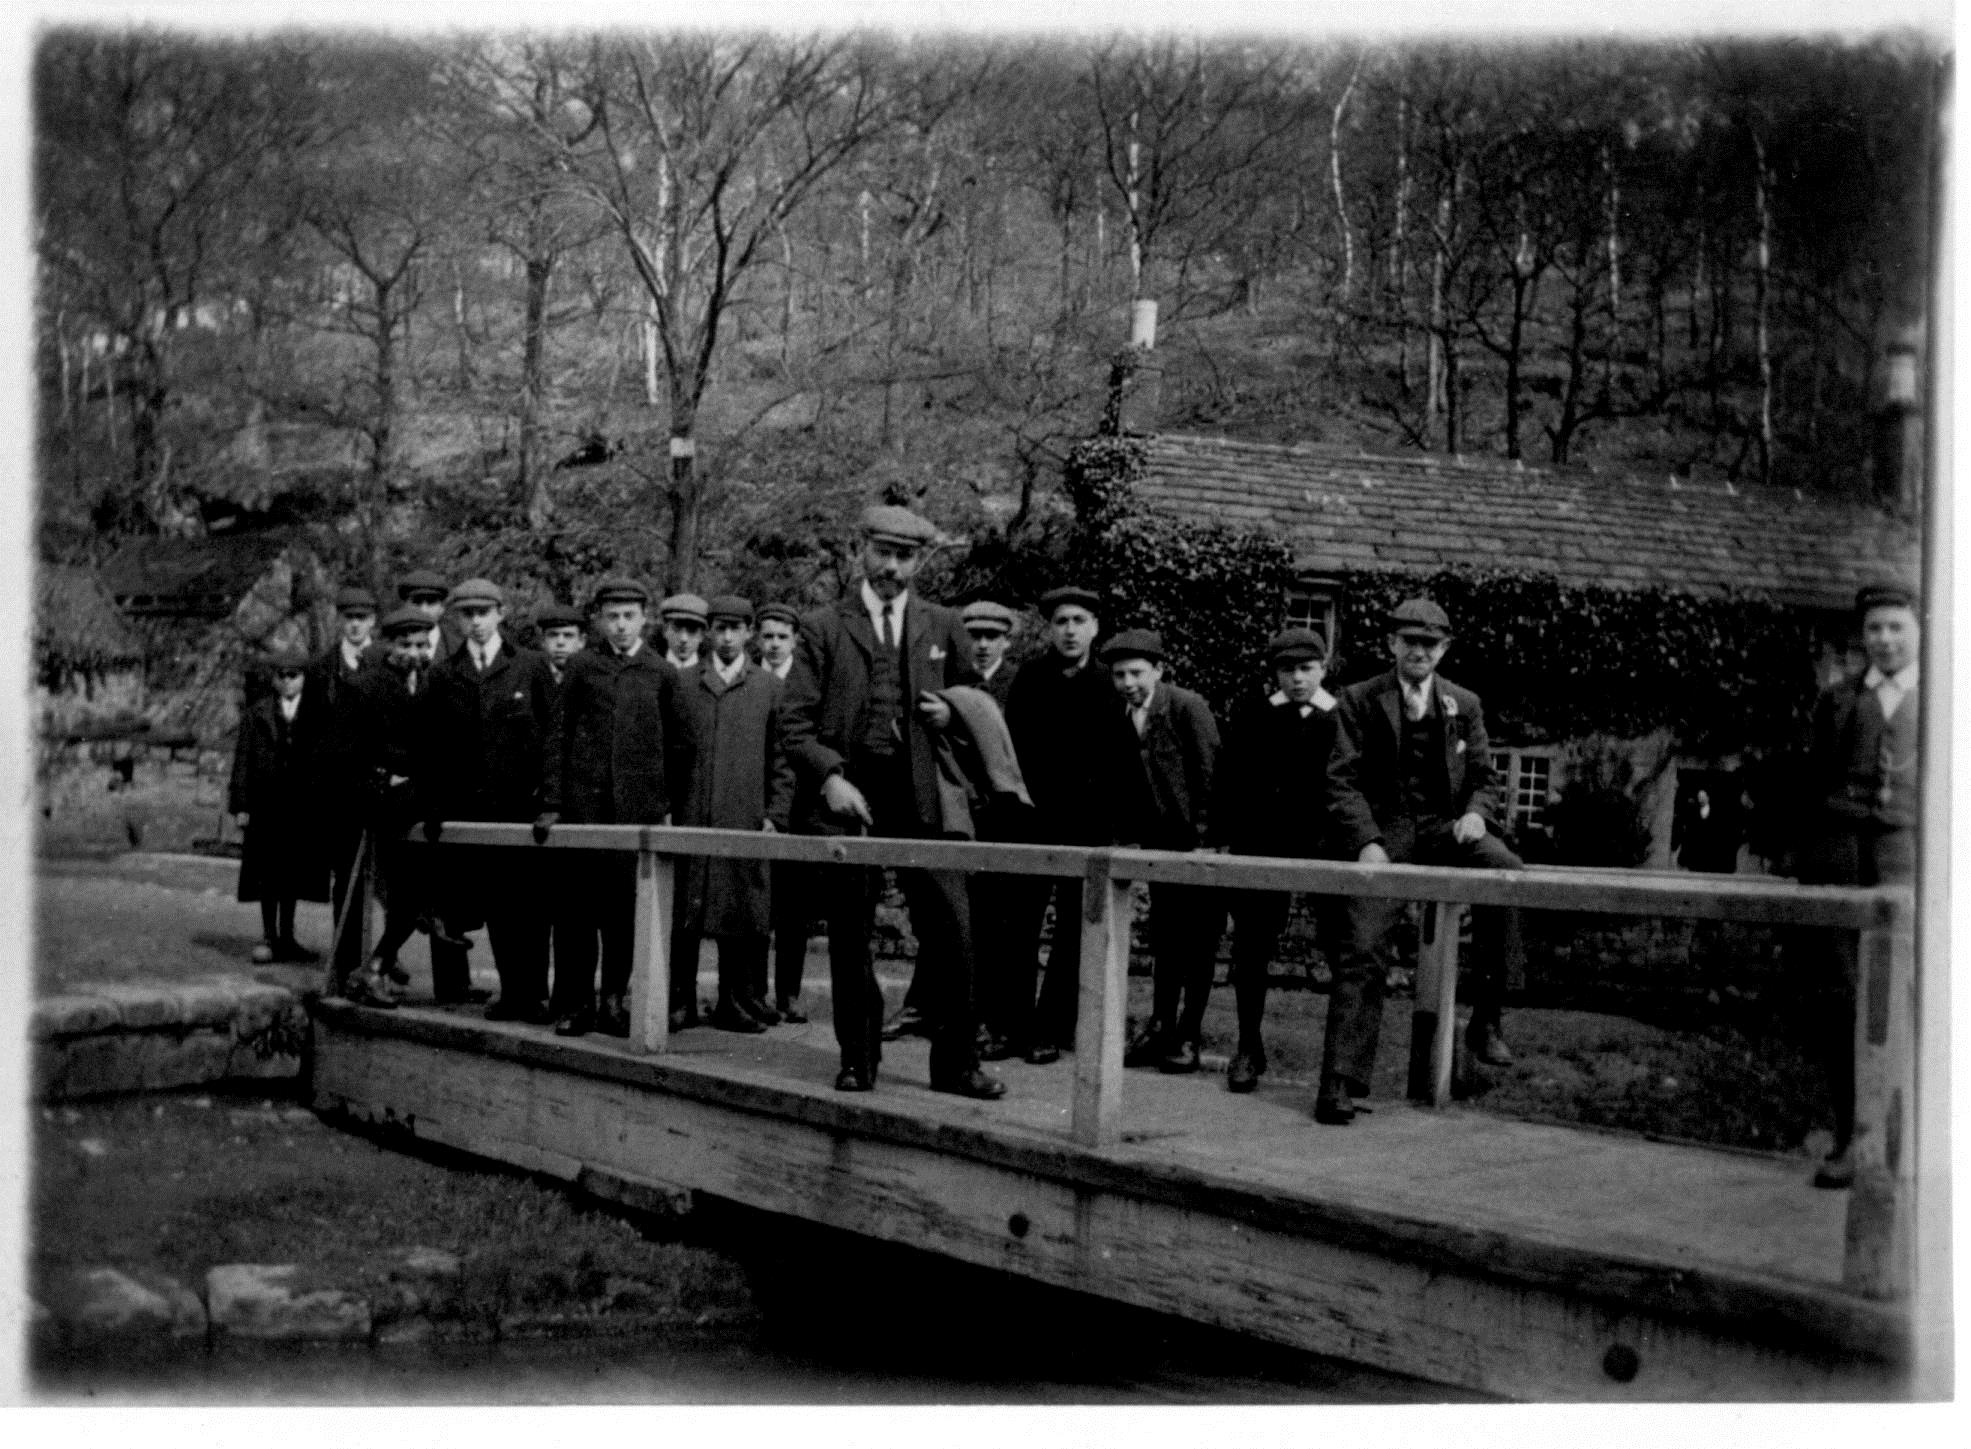 A group of school children with their teacher cross the bridge, probably in the 1930s. Can you identify anyone in the photograph?